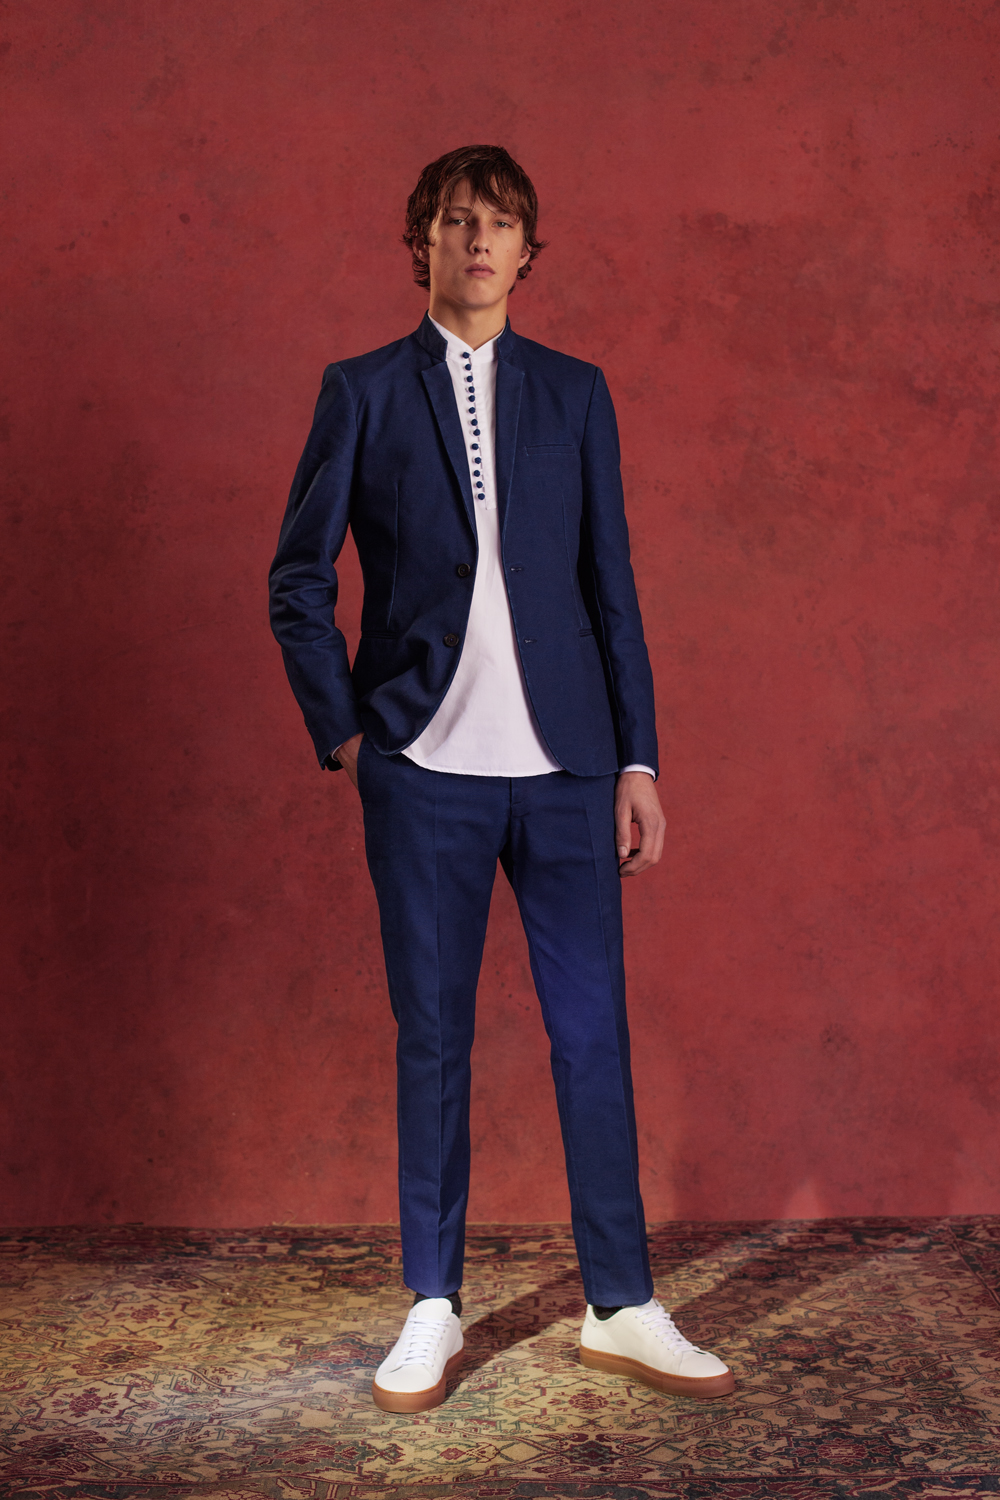 CONTEMPORARY SUIT DENIM NEPAL SHIRT